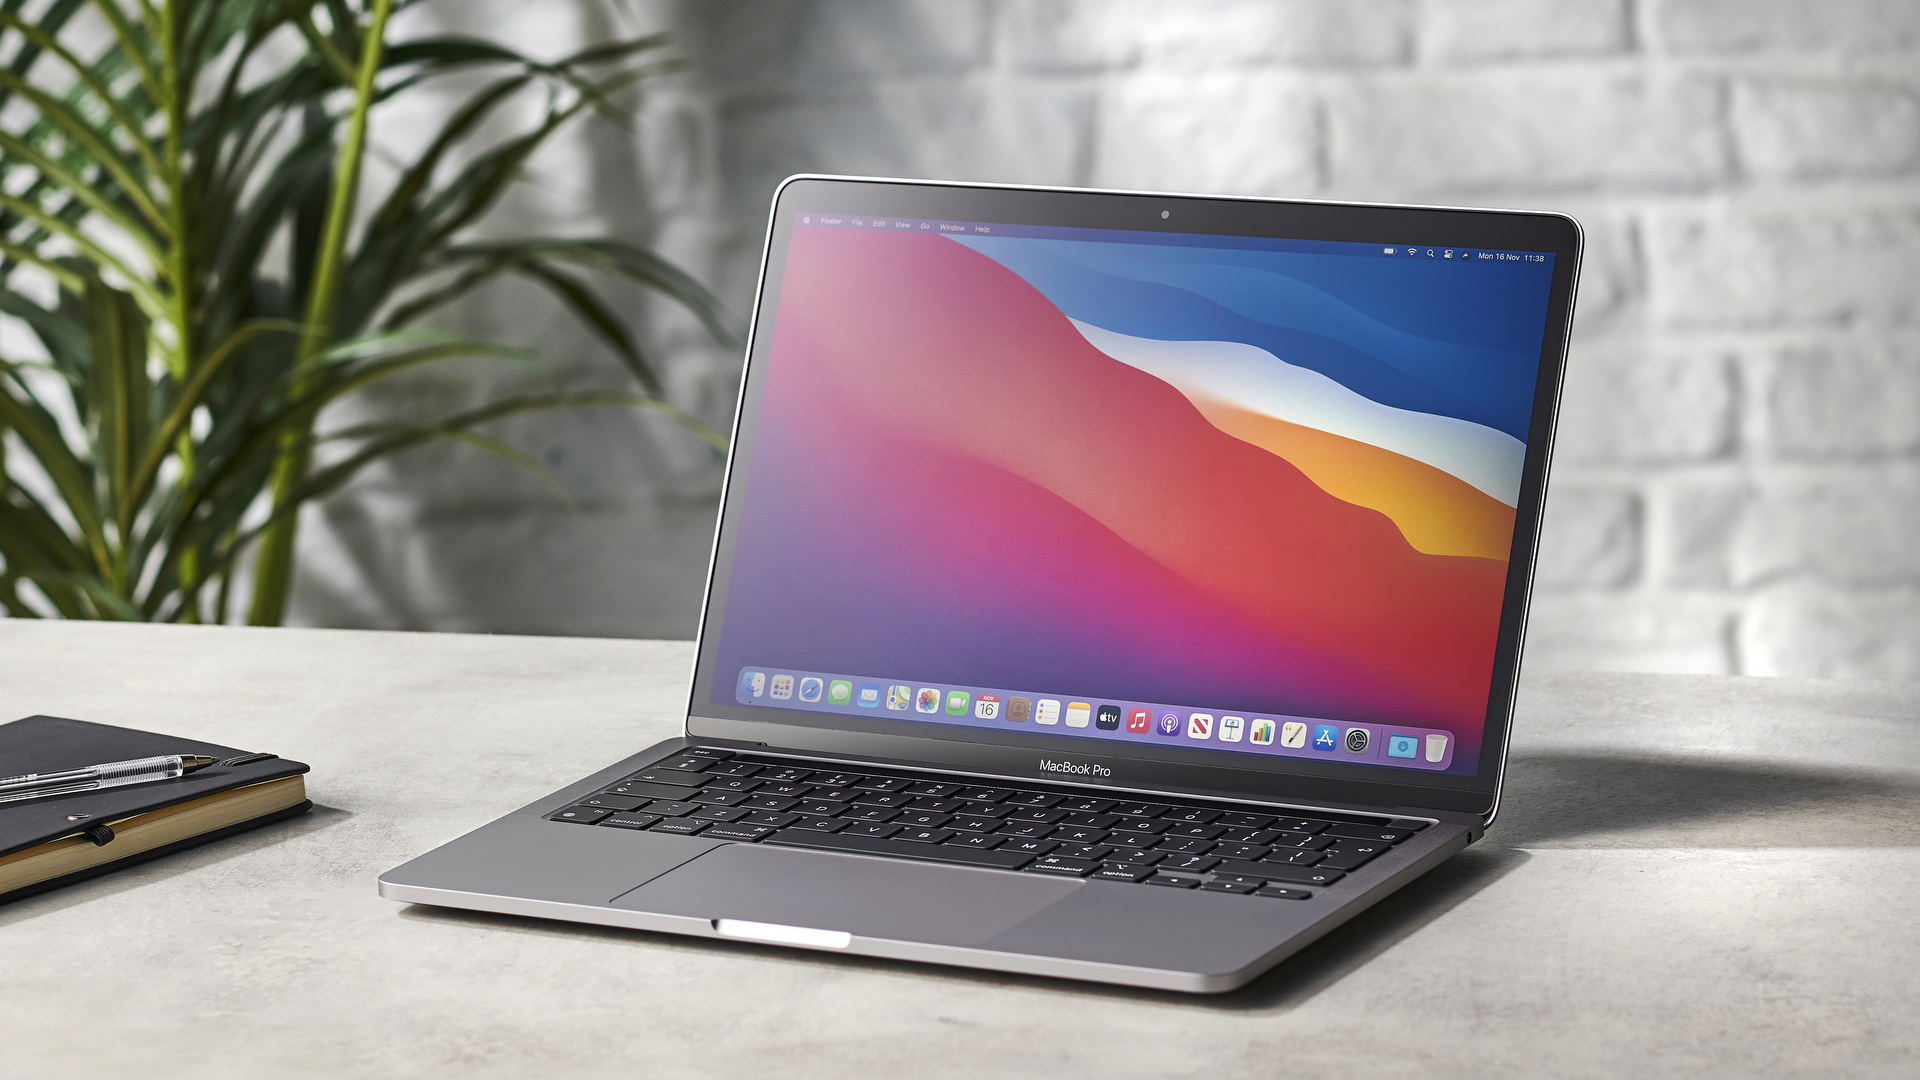 Hands on: Apple MacBook Pro 13-inch (M1, 2020) review